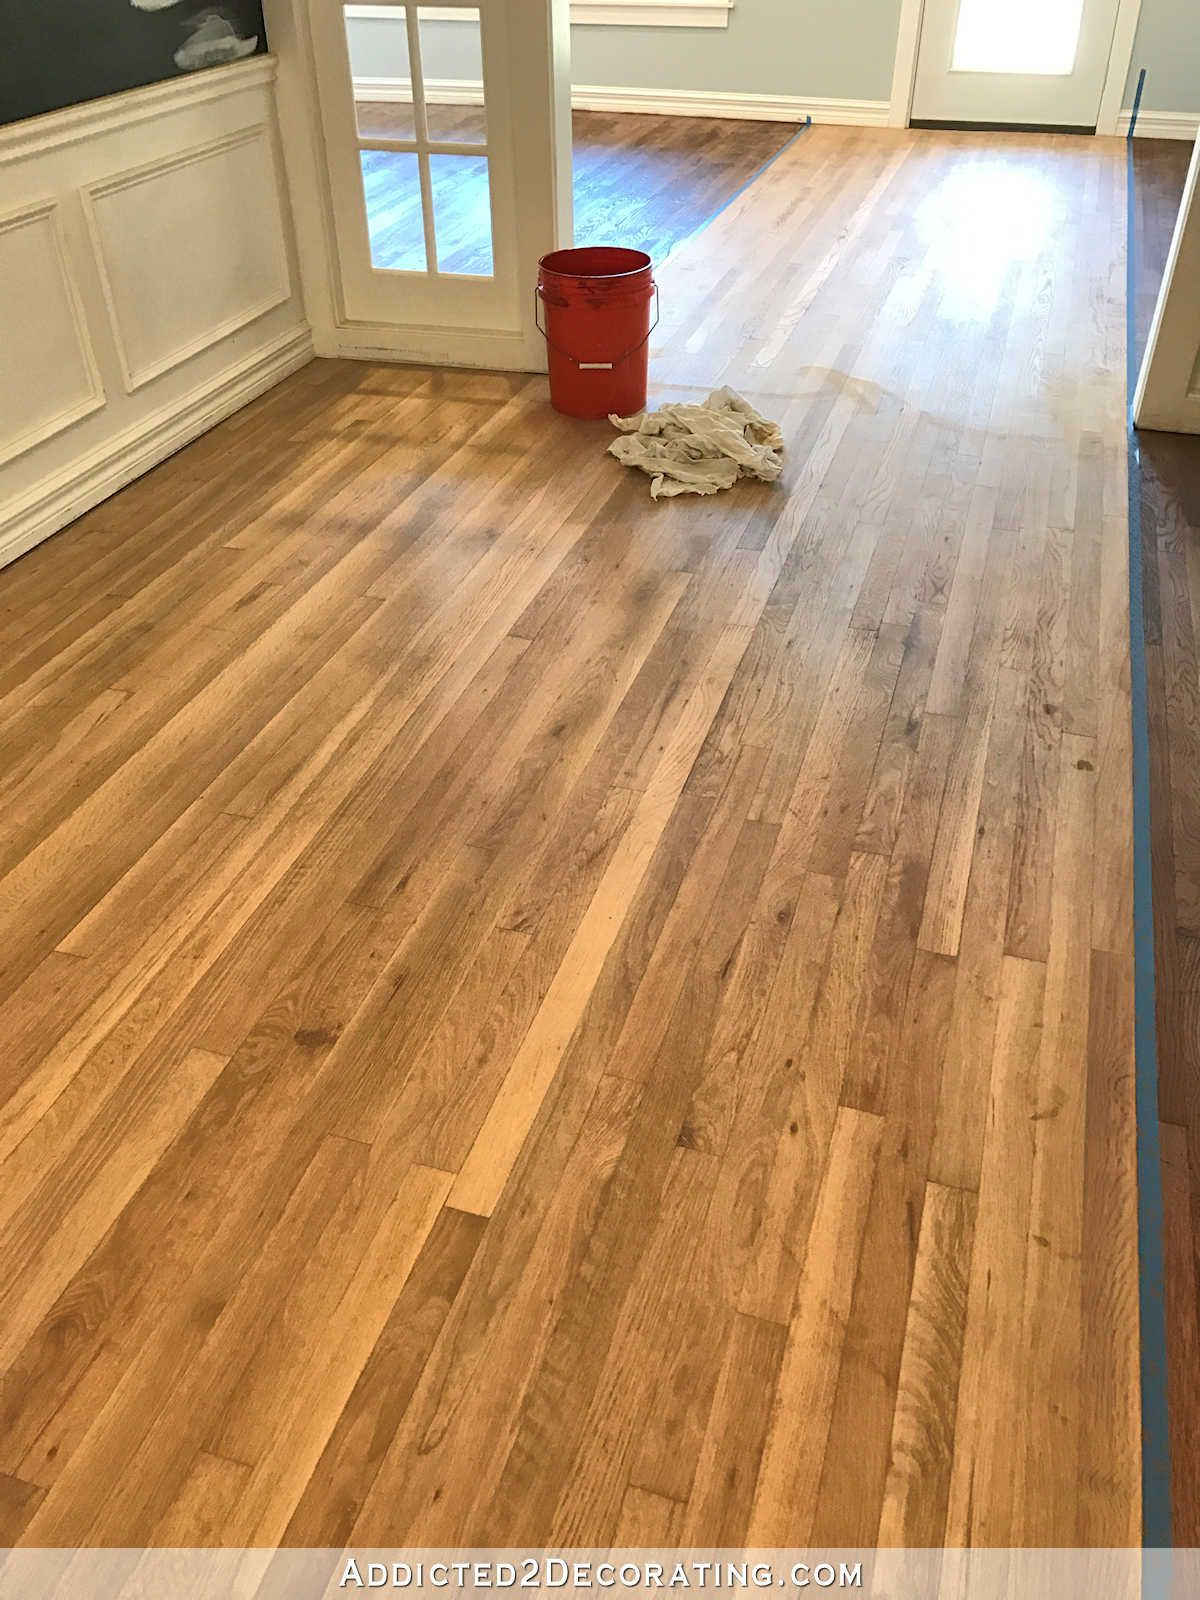 Staining Red Oak Hardwood Floors 8 Entryway And Music Room Wood Conditioner